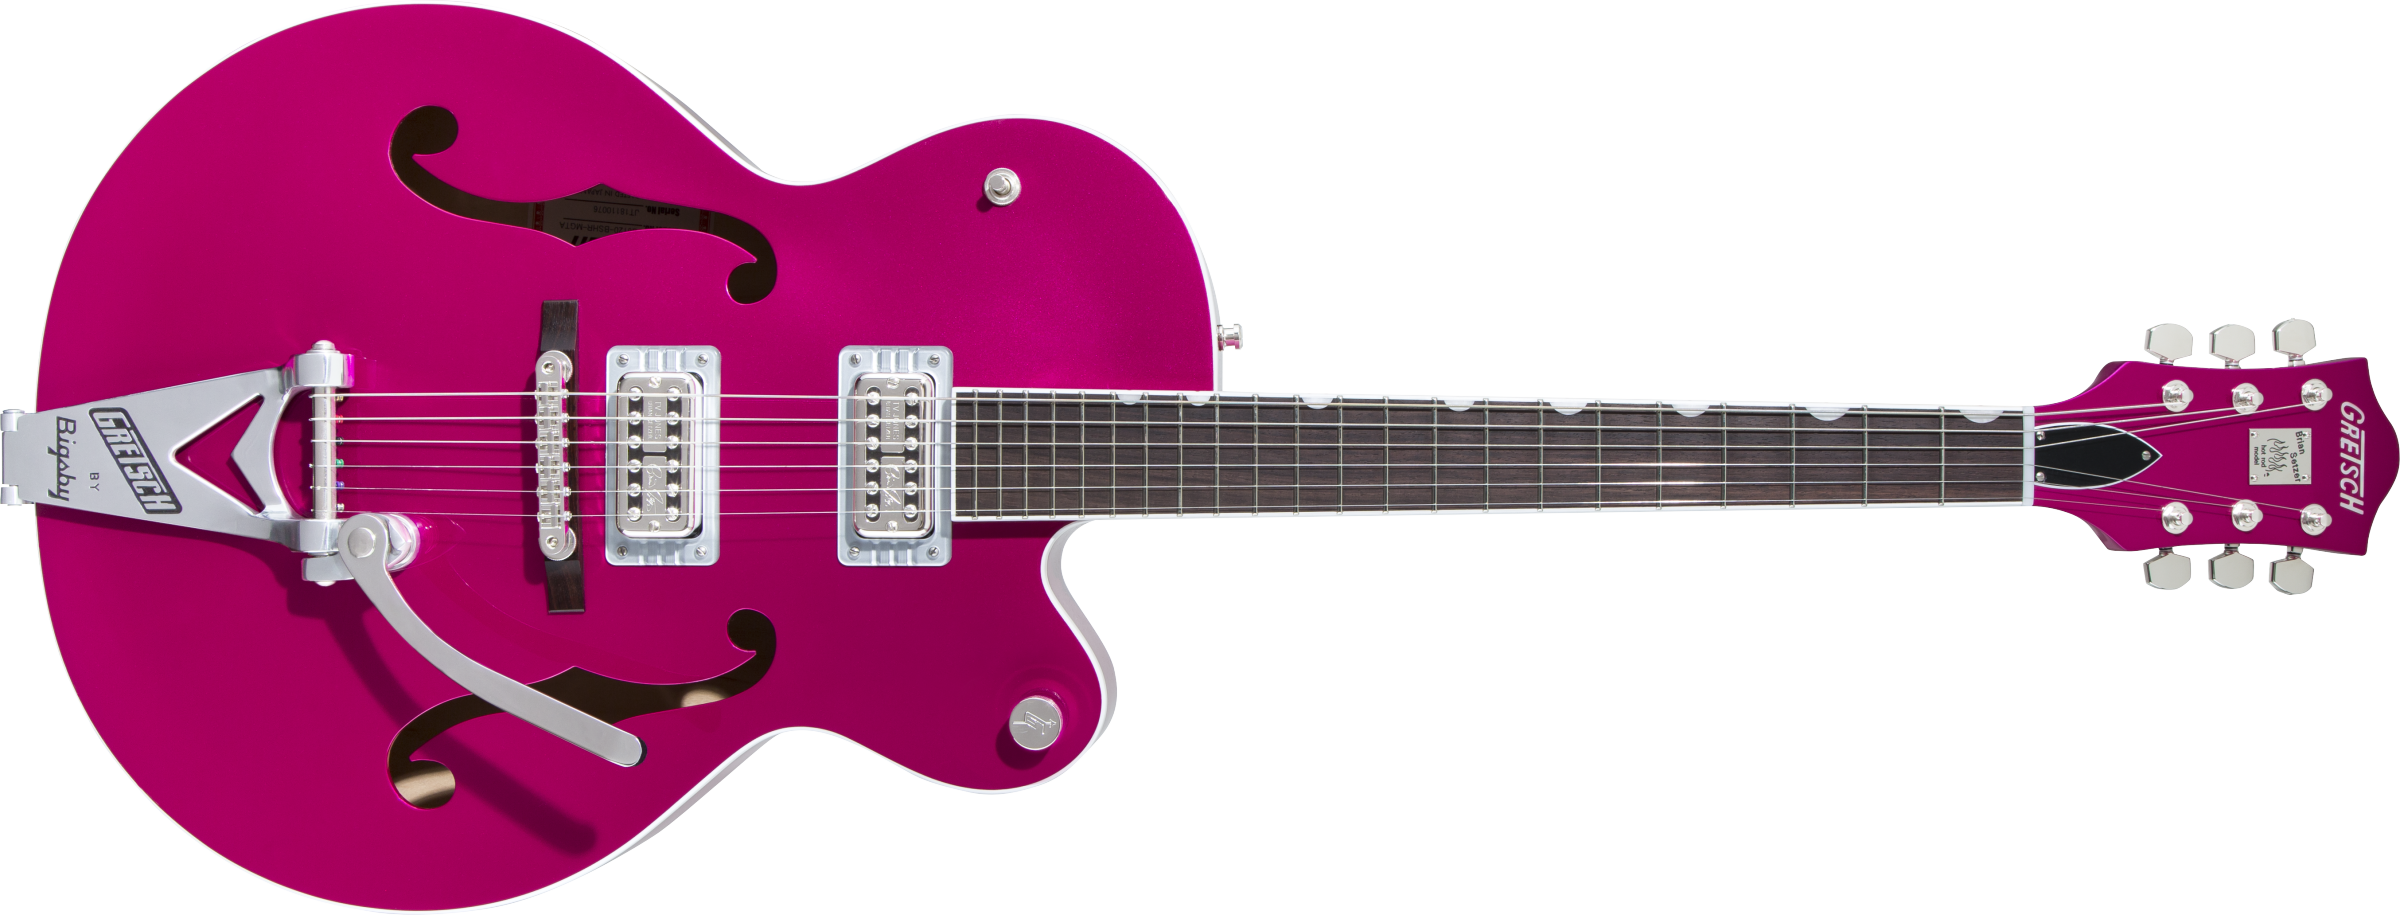 GRETSCH-G6120T-HR-Brian-Setzer-Signature-Hot-Rod-Hollow-Body-with-Bigsby-Rosewood-Fingerboard-Candy-Magenta-sku-571004090